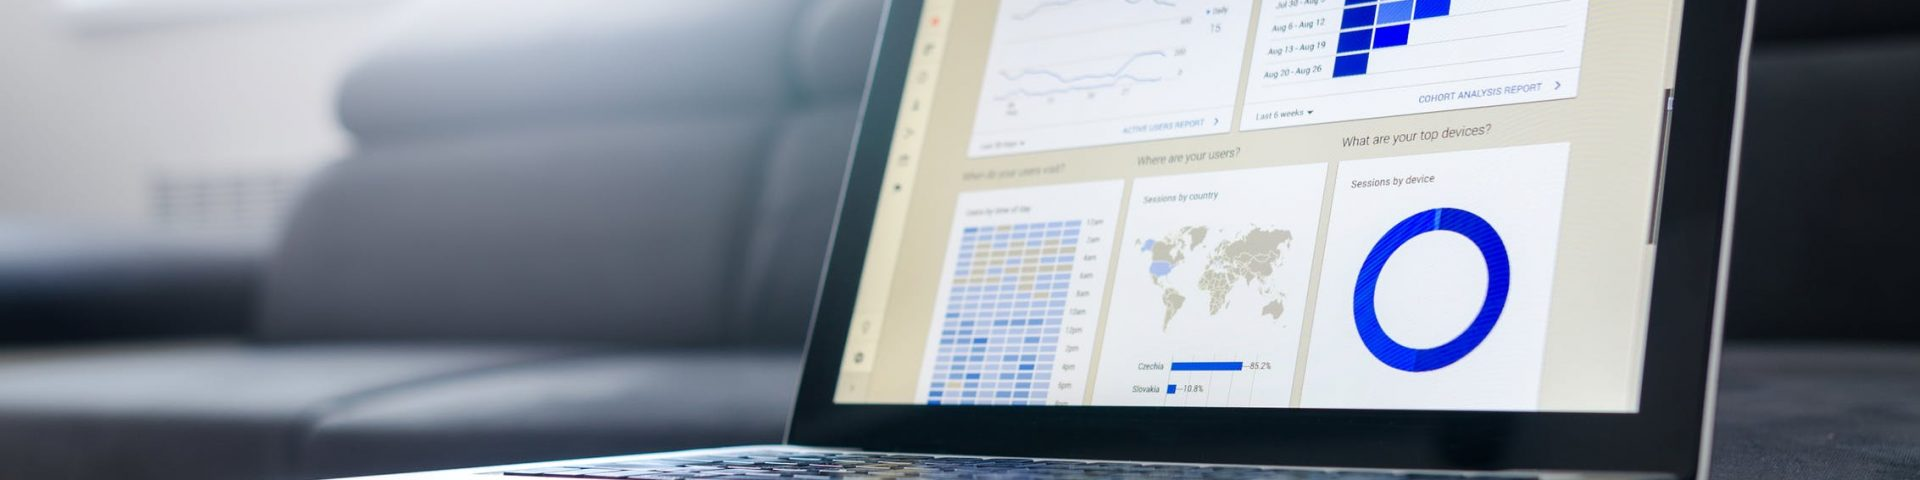 Outil de Business Intelligence qui affiche la data d'une entreprise